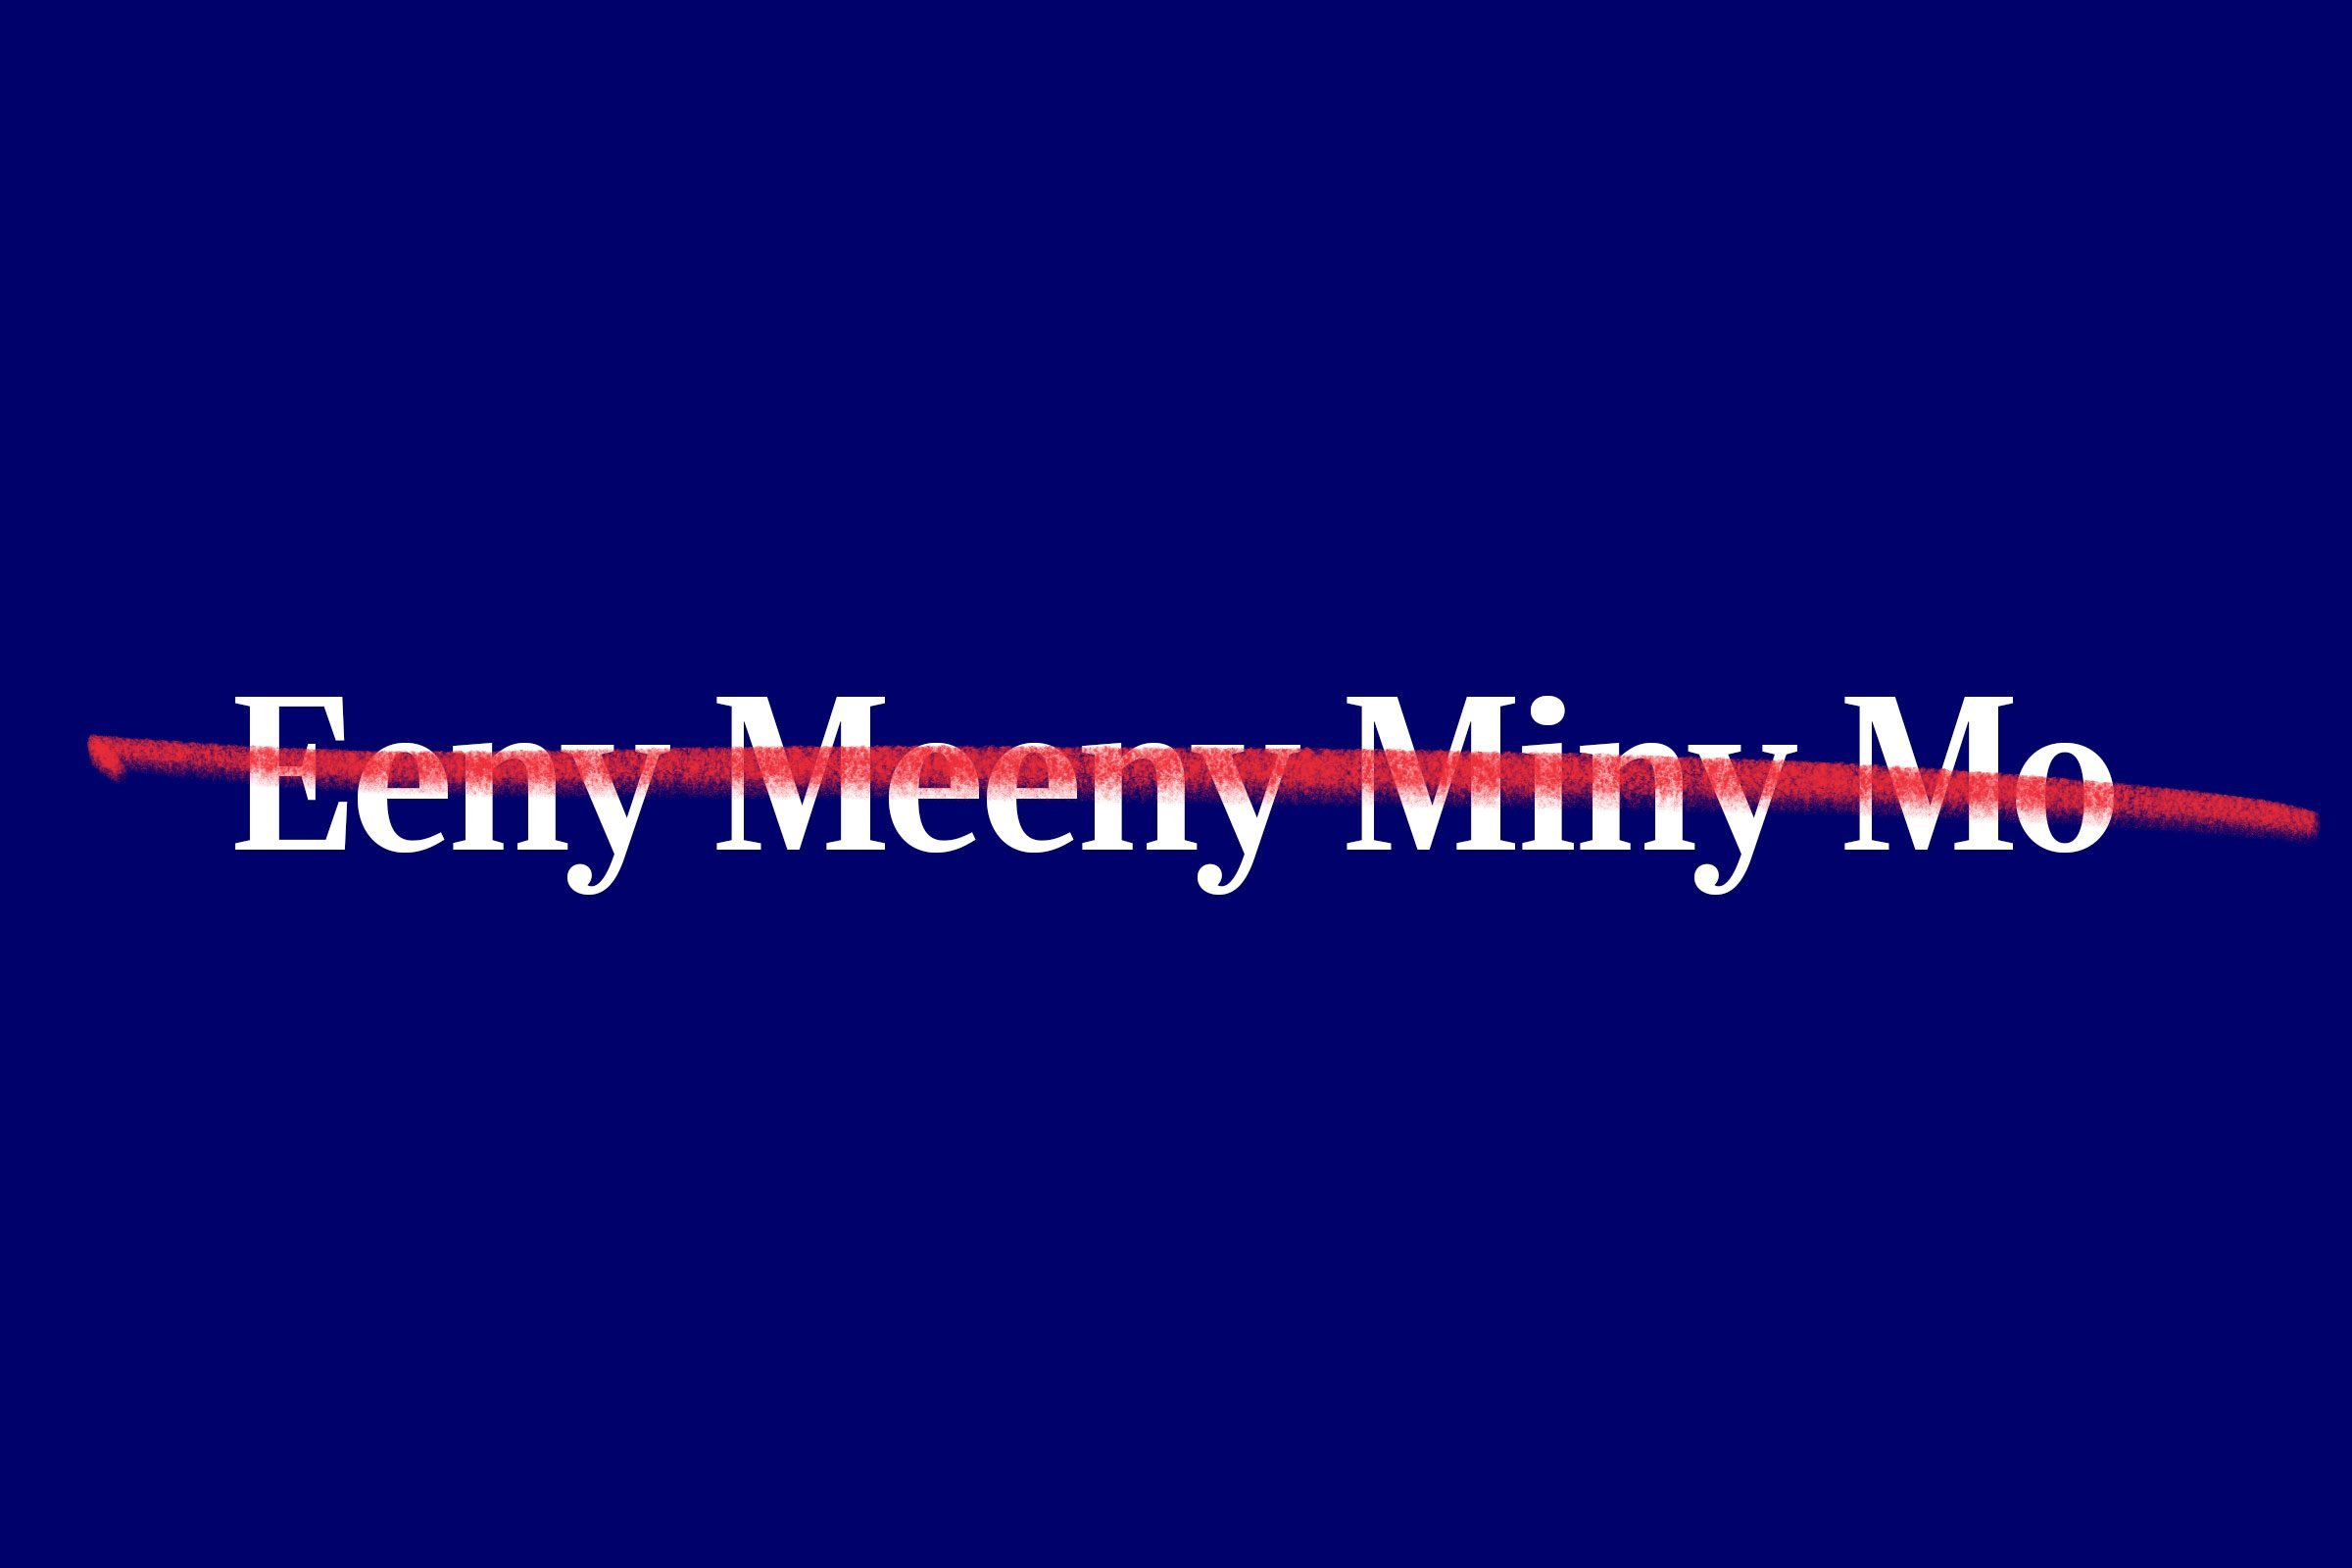 nursery rhyme title (Eeny Meeny Miny Mo) with red strikethrough overlay